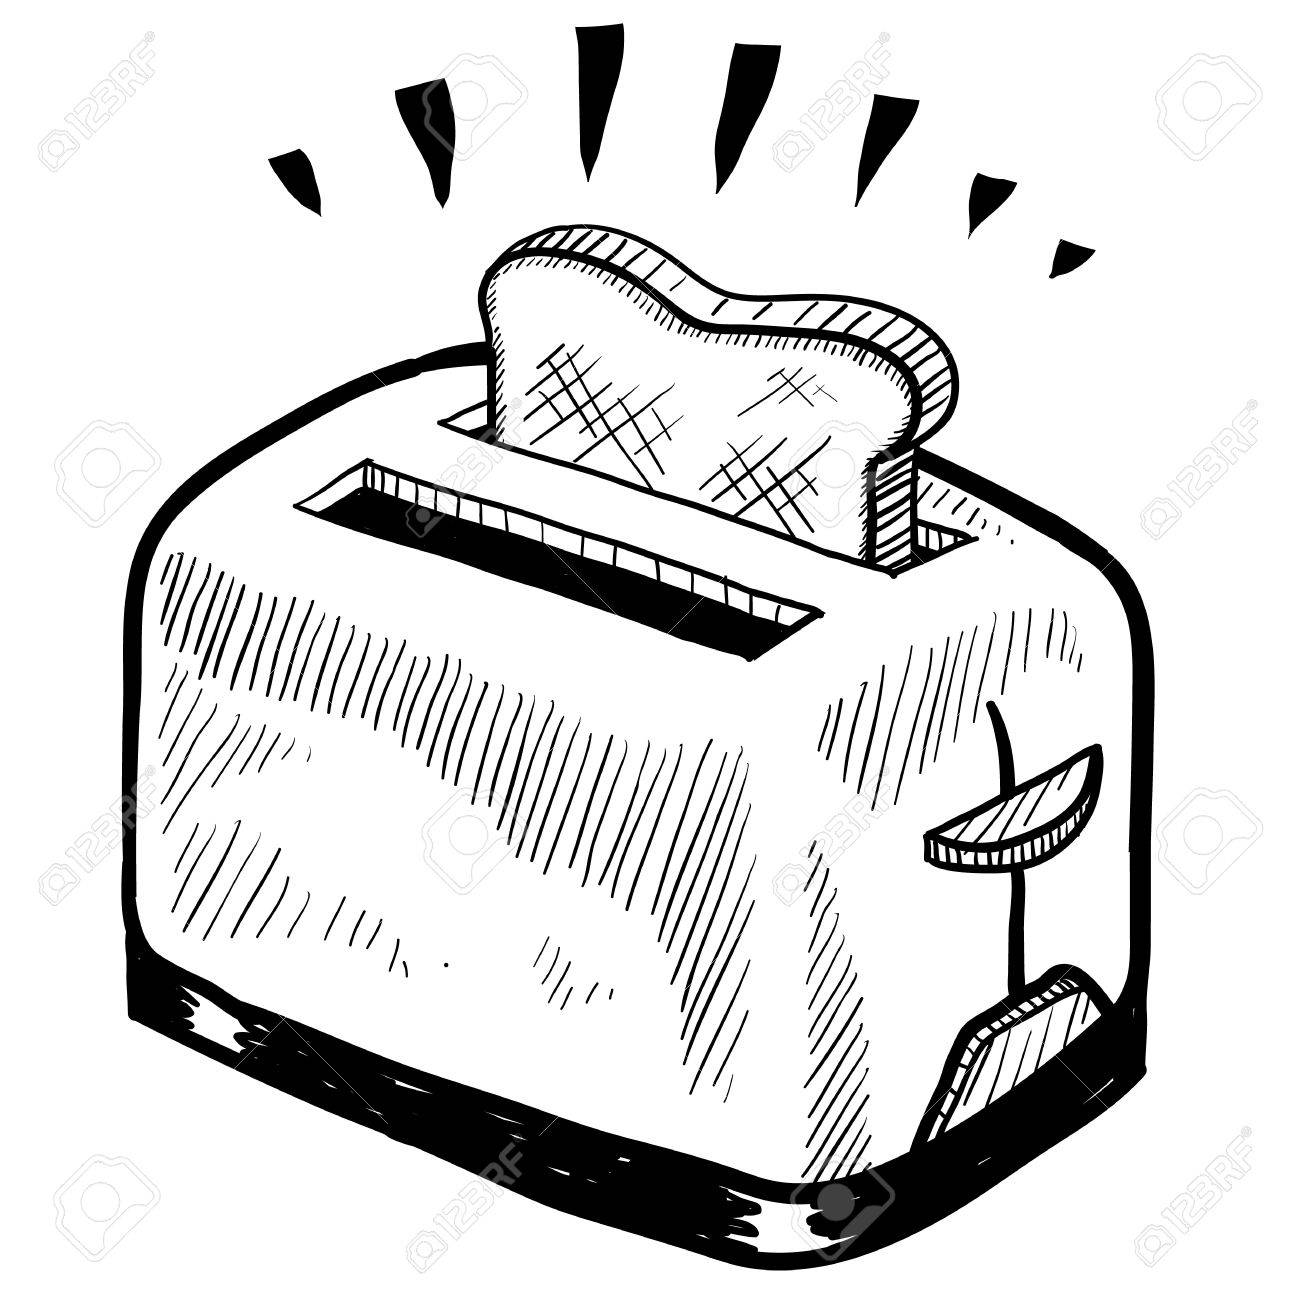 png transparent library Toaster clipart black and white. Portal